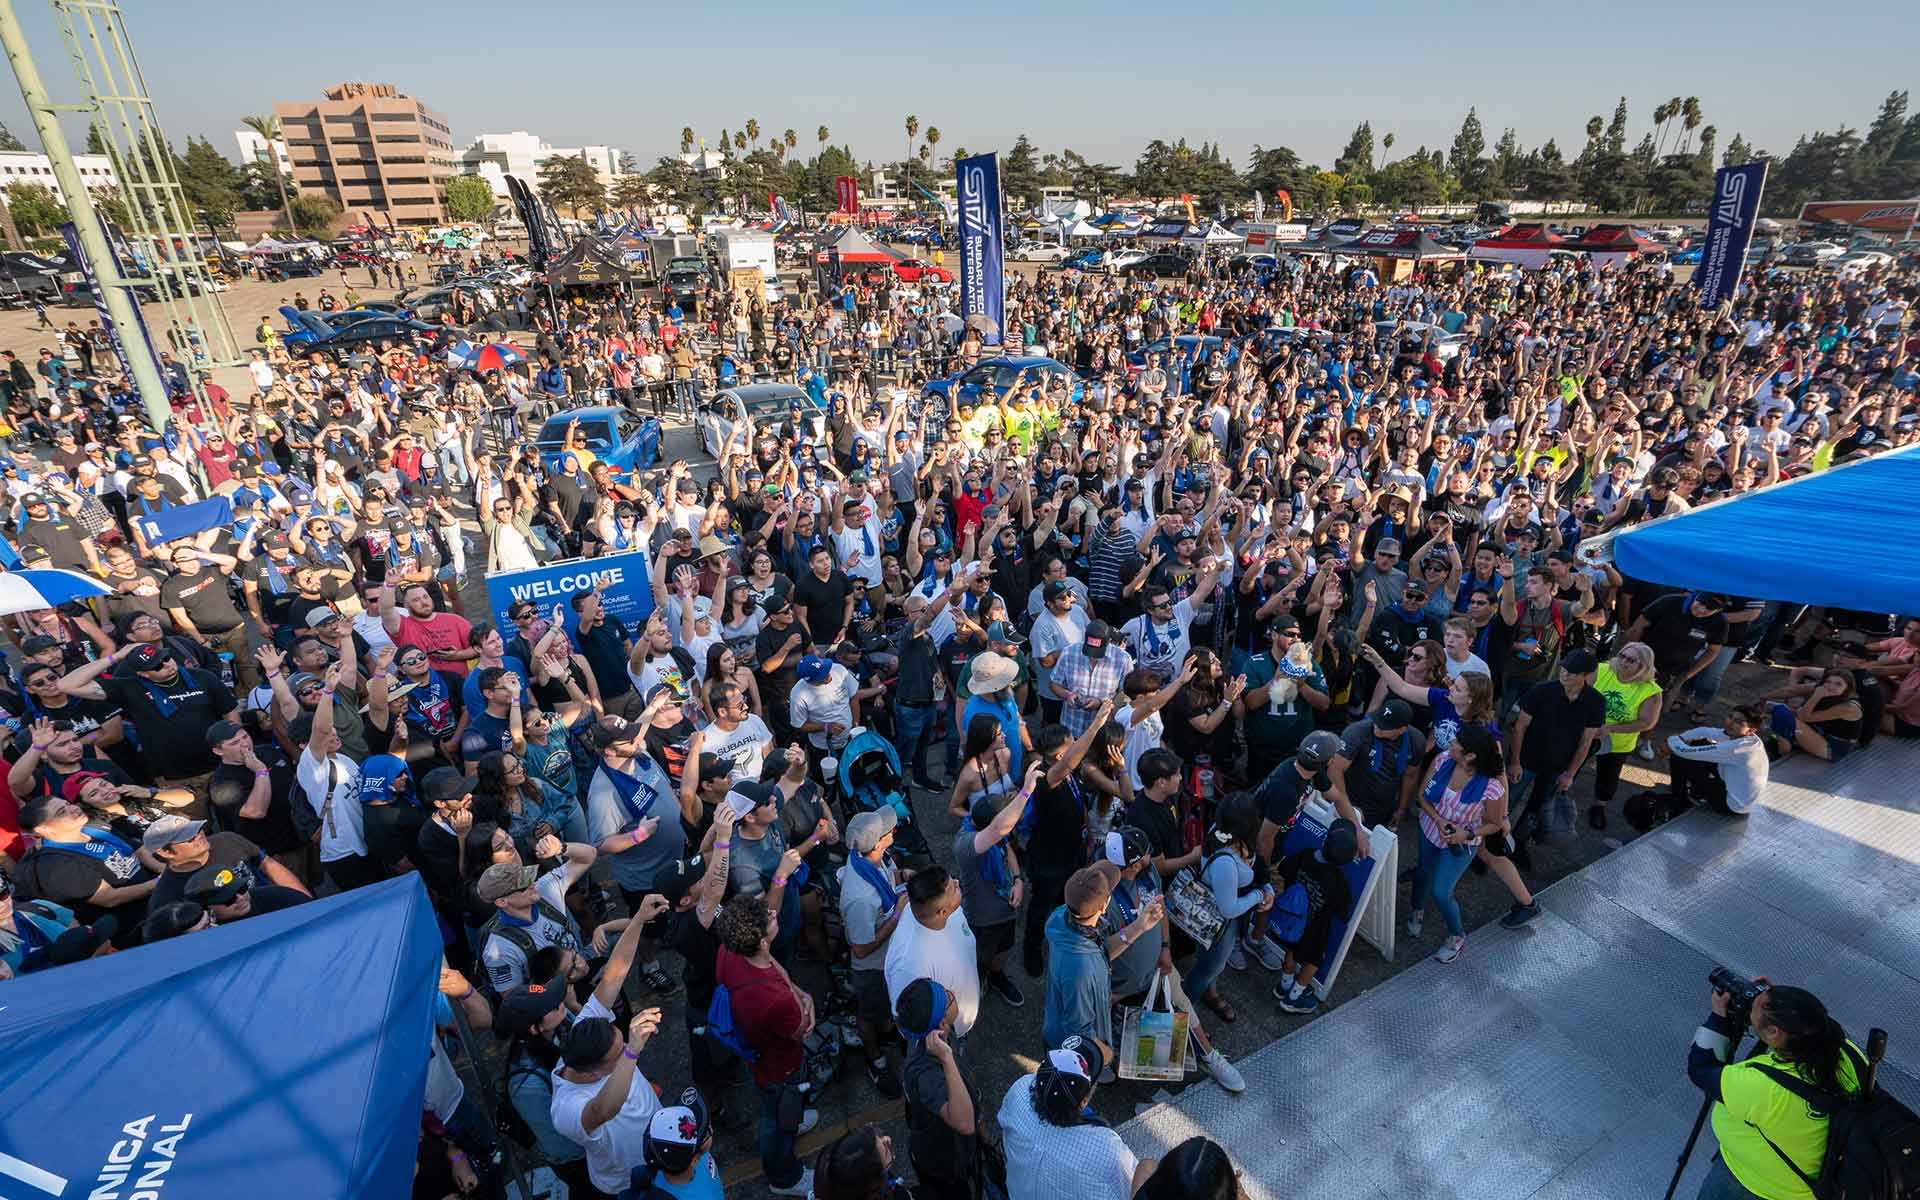 Crowd at Subaru STI event